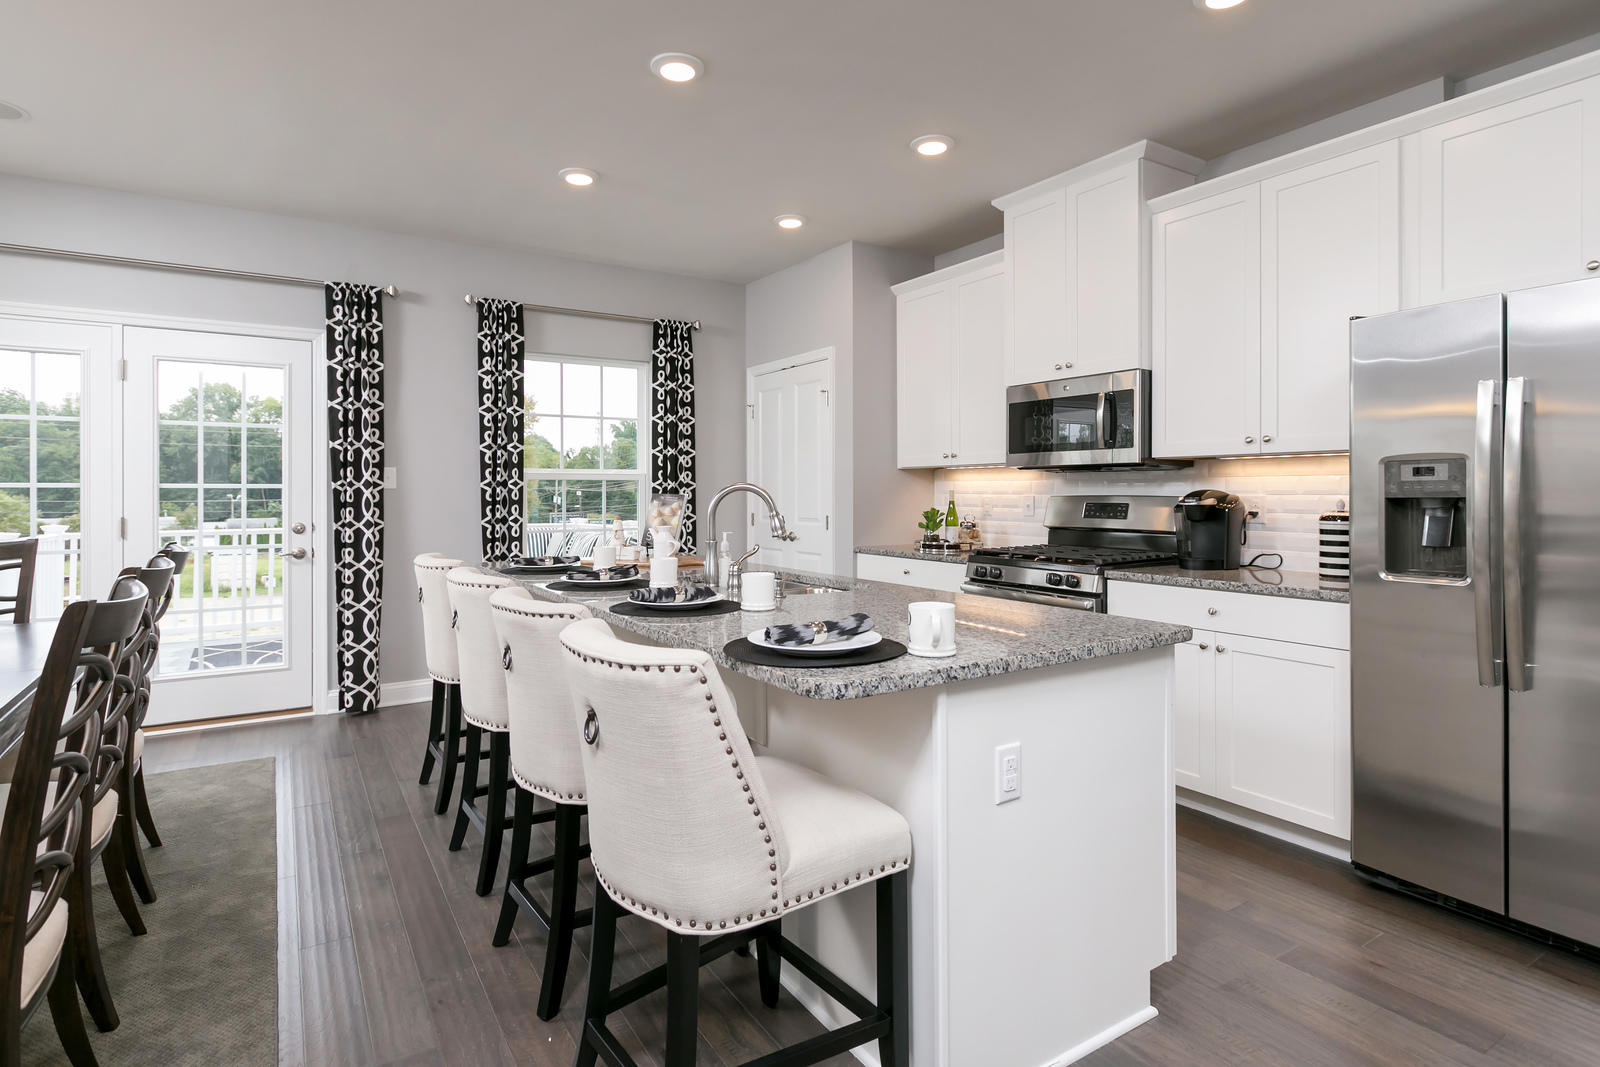 New Mozart2 Townhome Model For Sale At Riverwood Chase In Toms River, NJ